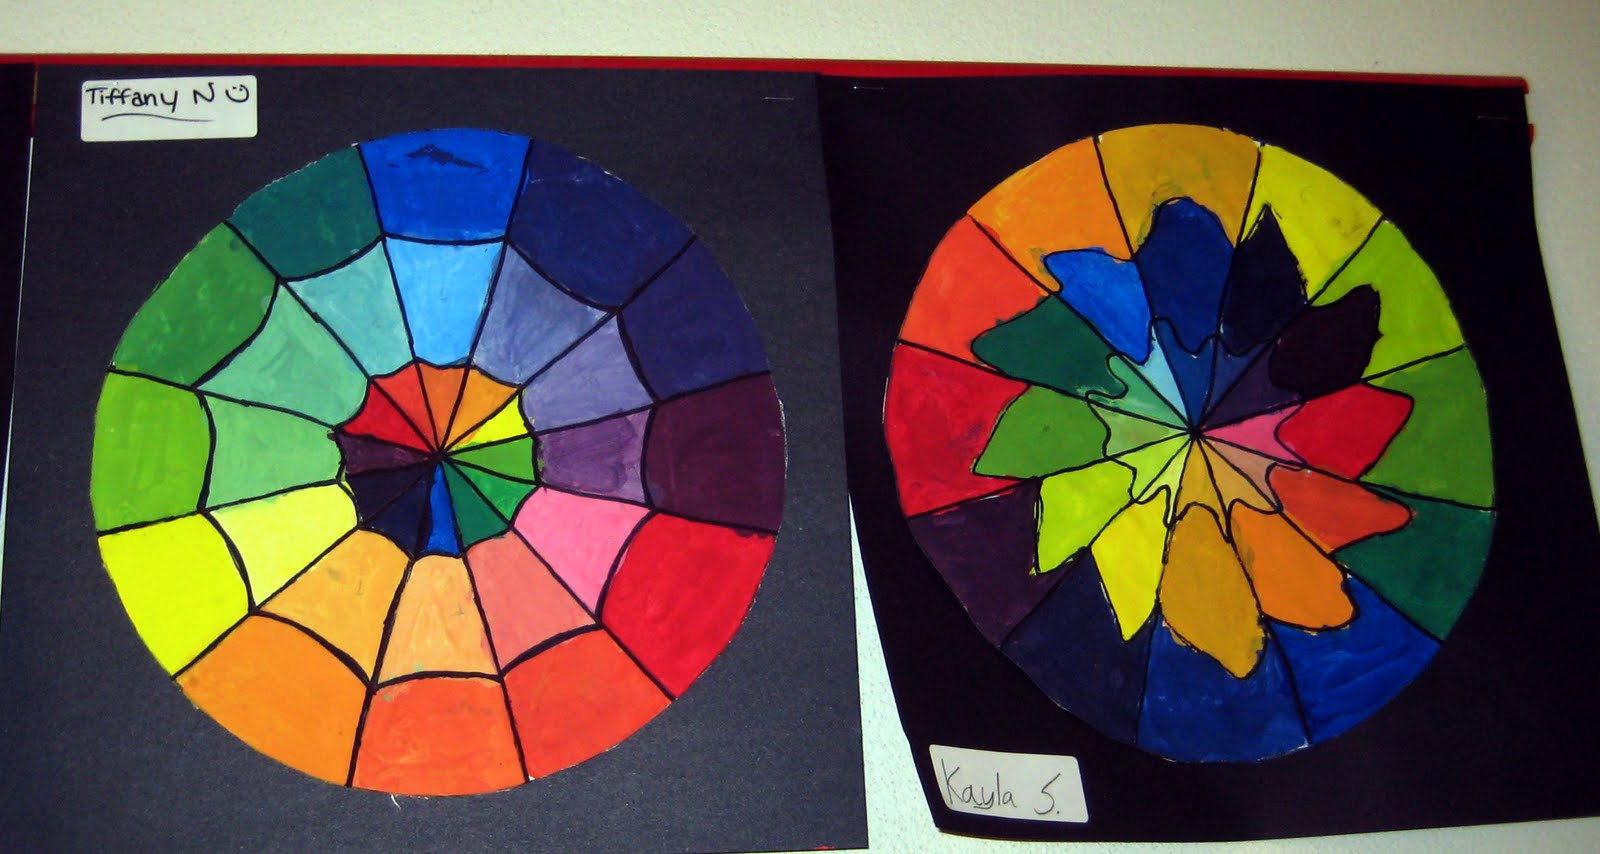 Have The Kids Do All Parent Colors First I Want To Practice Their Color Mixing So They Remake In Following Classes